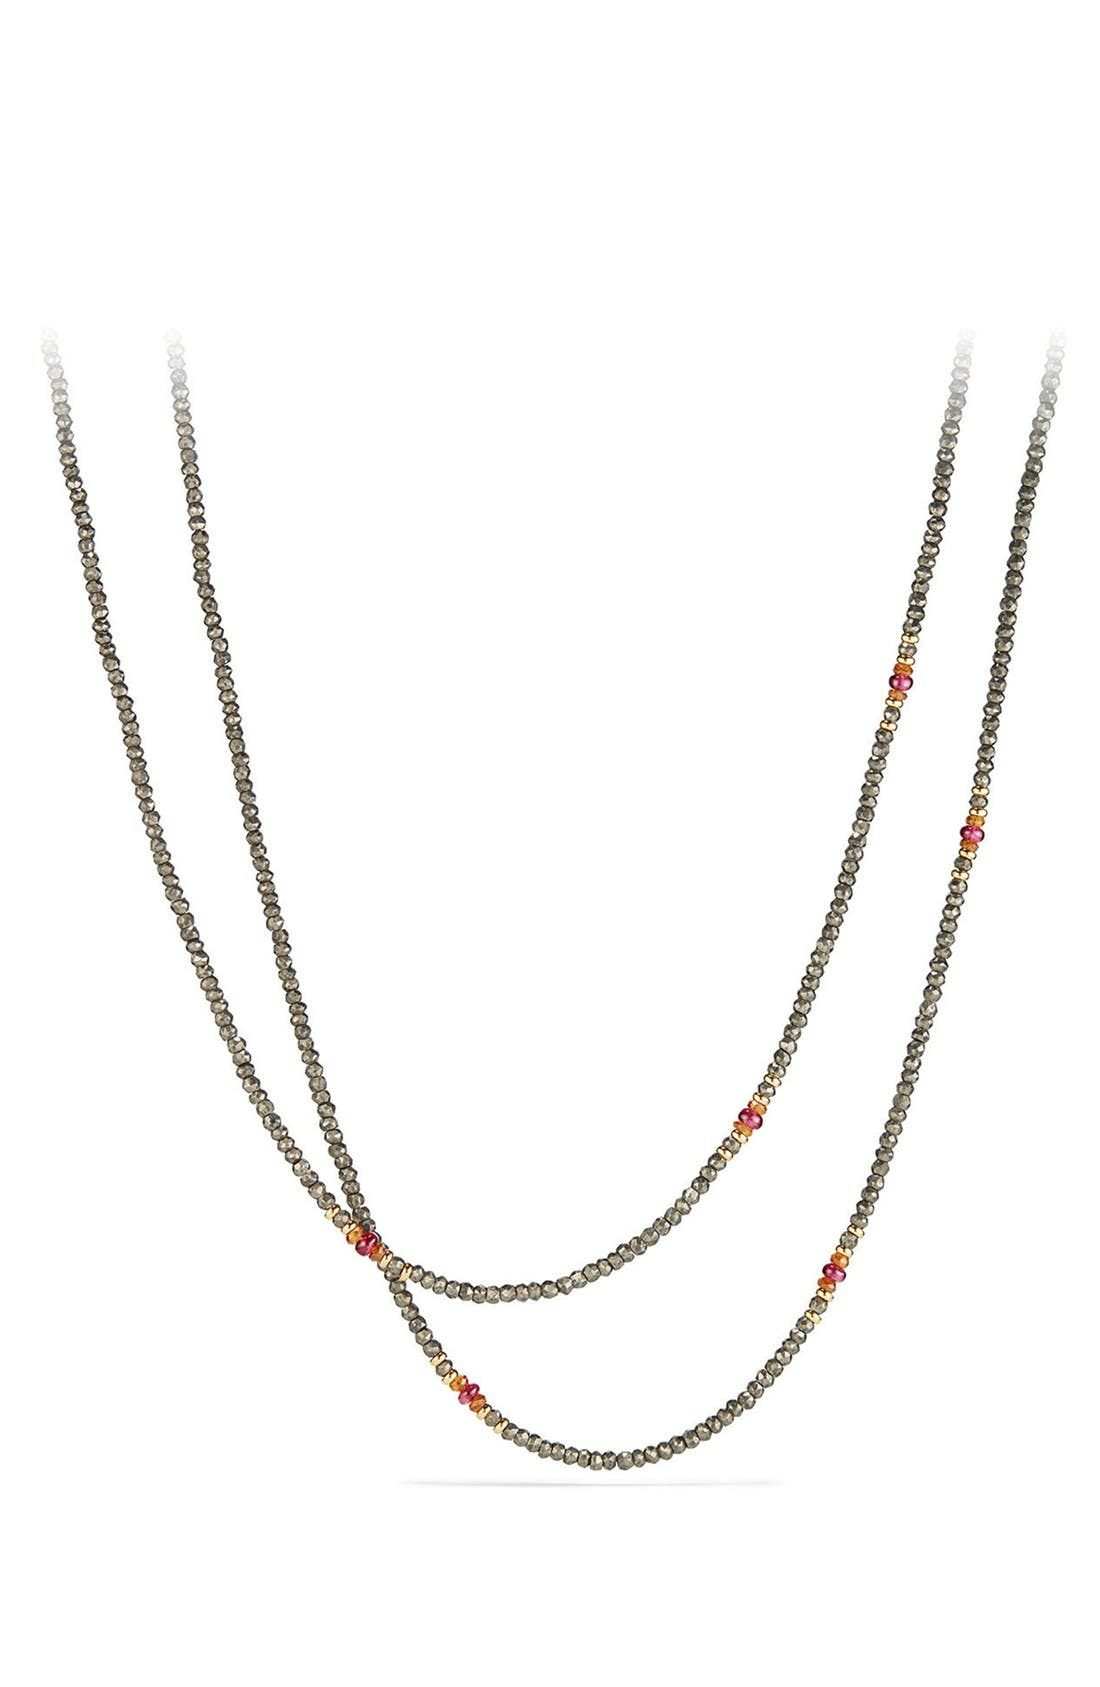 Cable Berries Tweejoux Necklace with 18K Gold,                             Main thumbnail 1, color,                             PYRITE